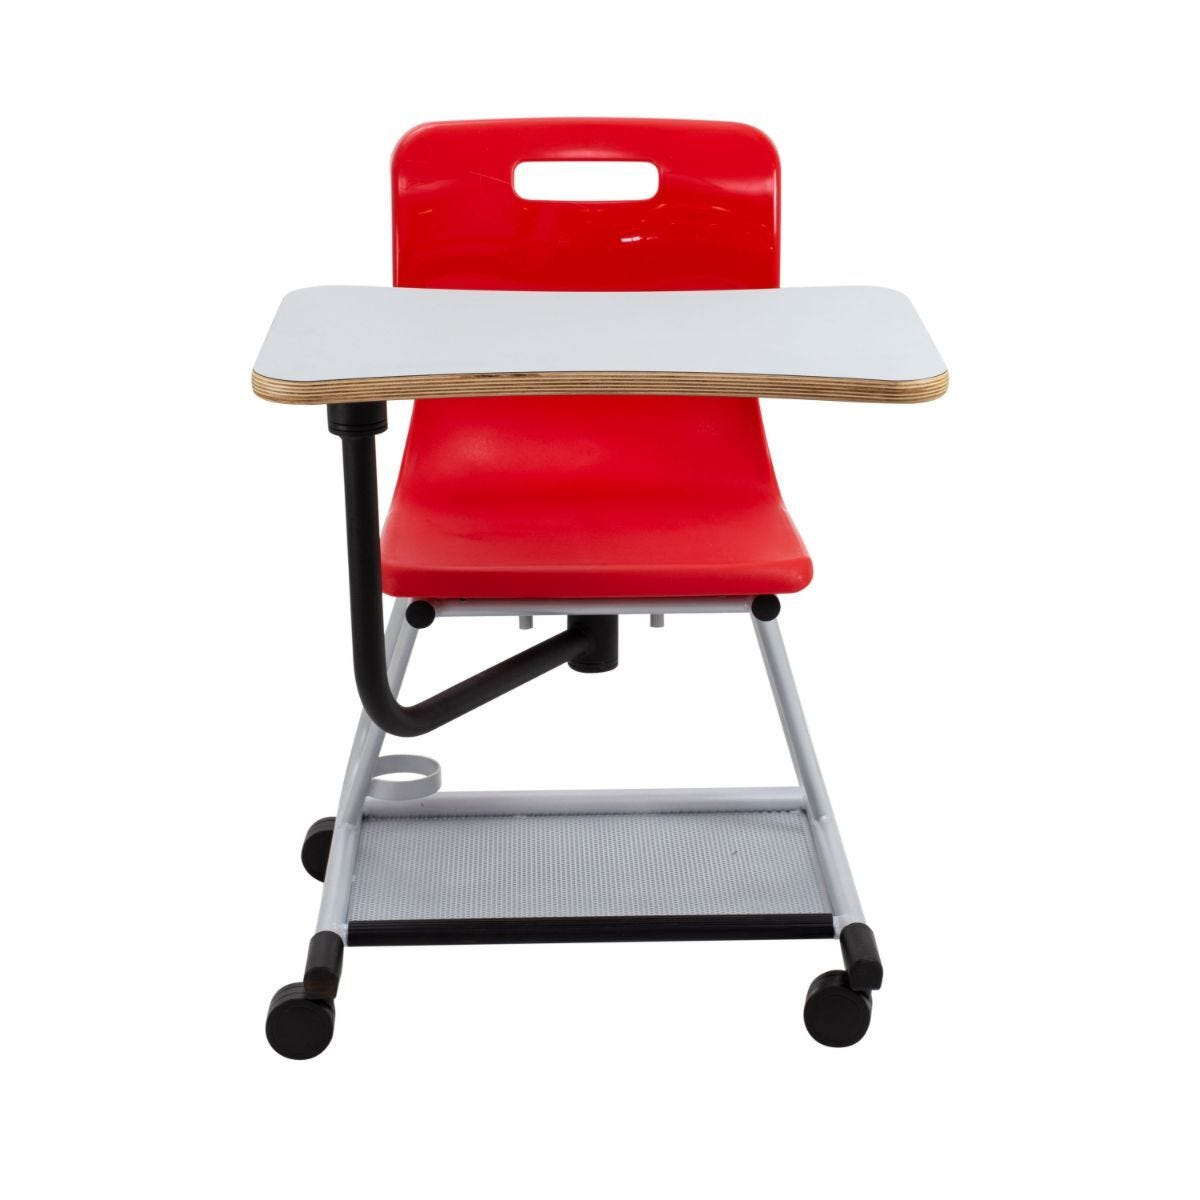 TC Office Titan Teach Chair with Writing Tablet Red